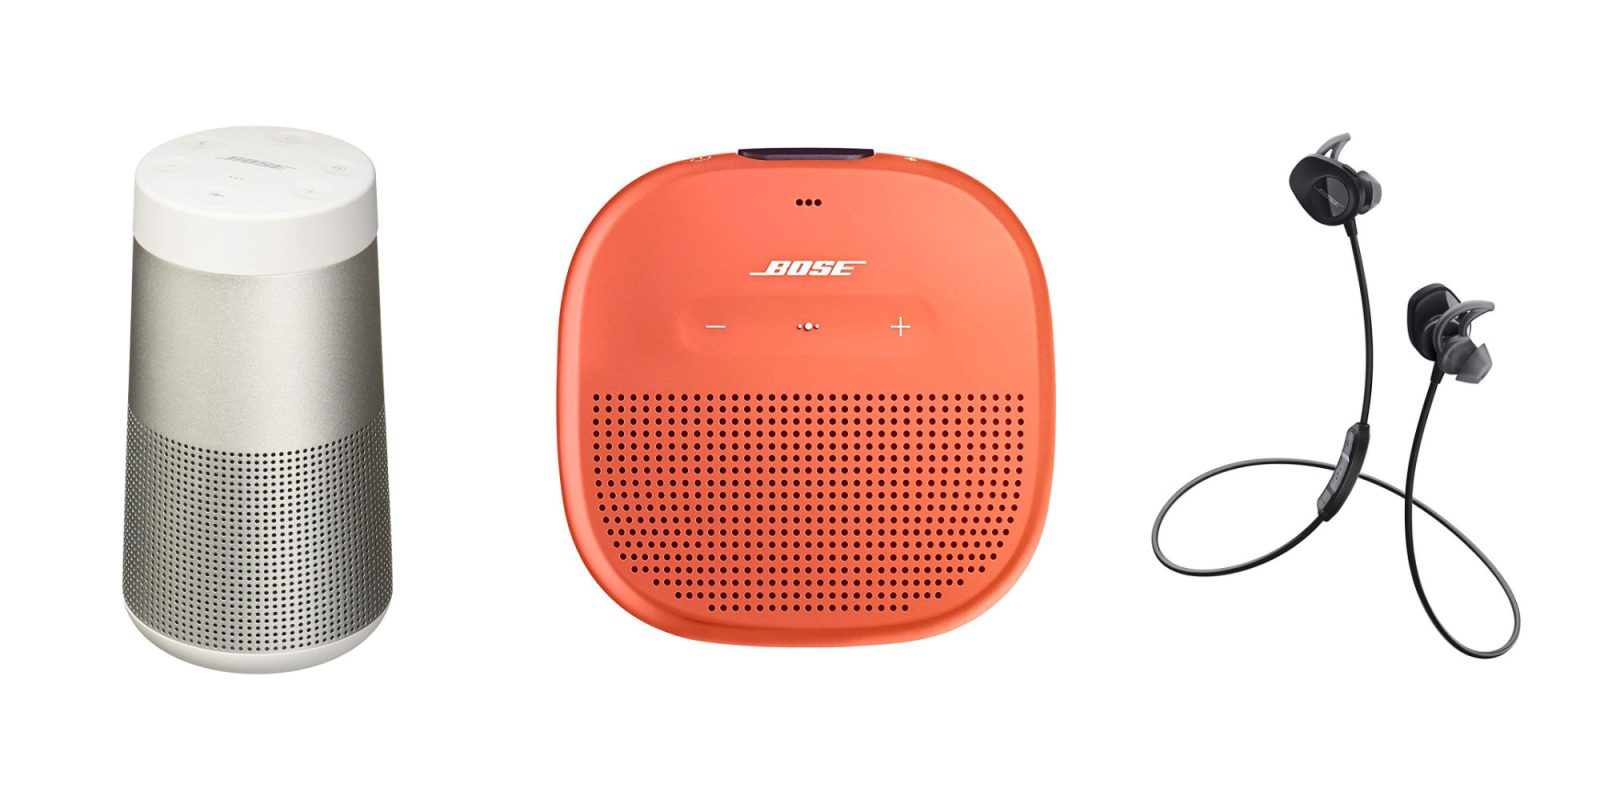 Amazon's Bose discounts bring SoundLink Micro back to $69 (Save 30%), more